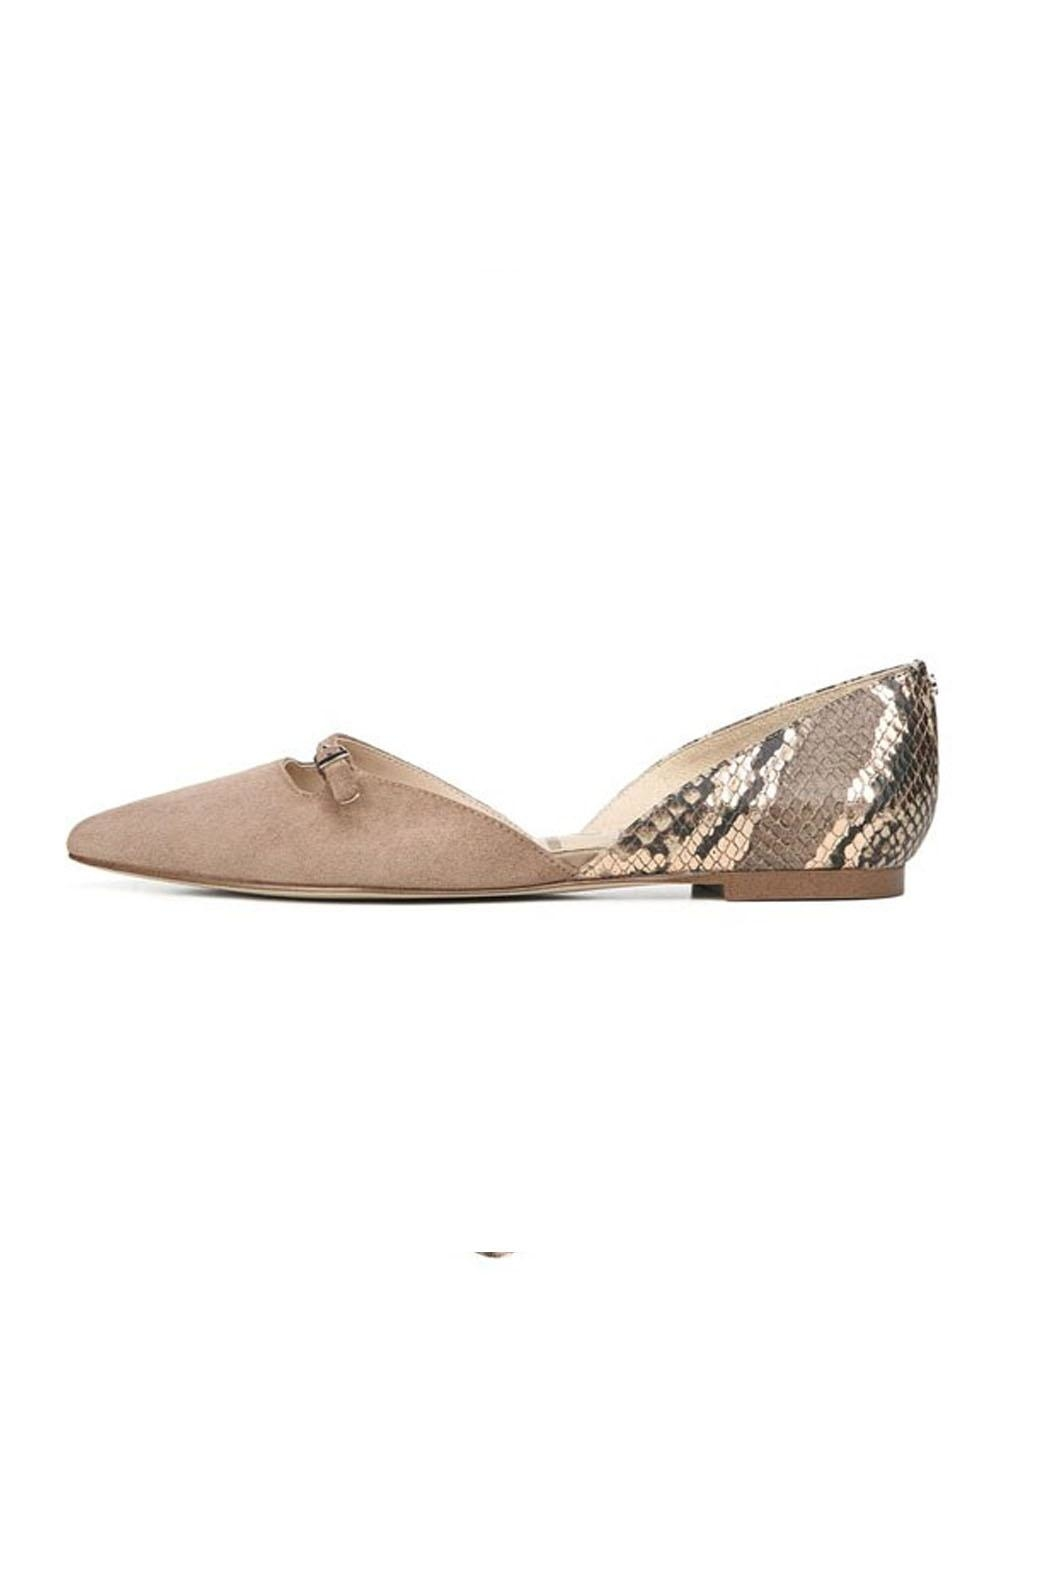 Sam Edelman Brown Snake Flats - Main Image